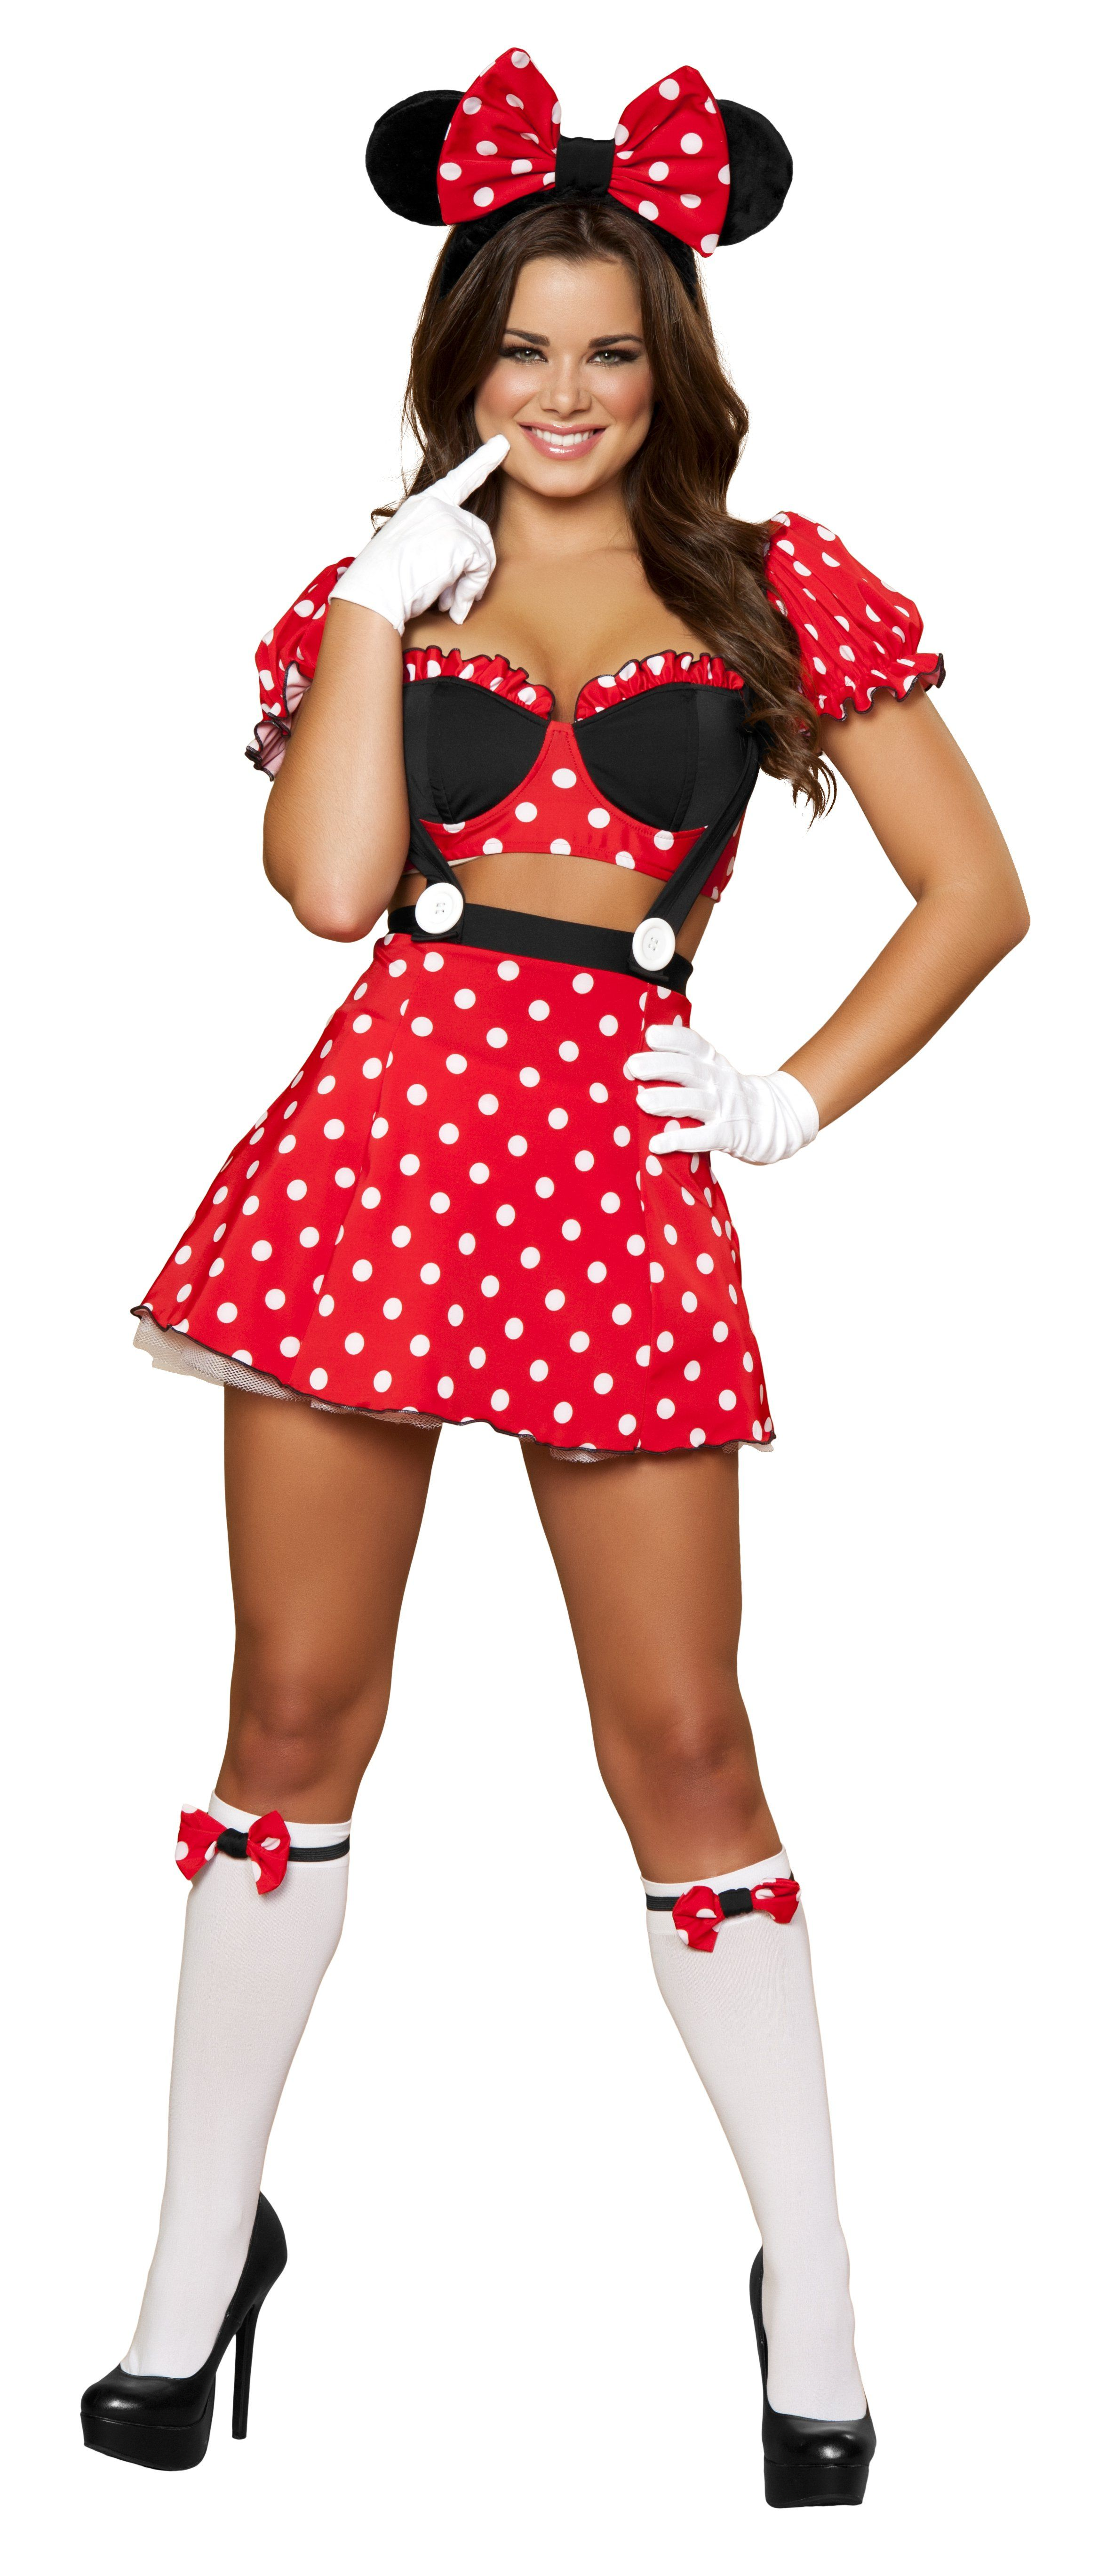 Even #mickey mouse would be jealous if she saw this costume u003c3 Three piece Mousey Mistress includes crop top and matching skirt with suspenders and ears ...  sc 1 st  Pinterest & Even #mickey mouse would be jealous if she saw this costume u003c3 Thre ...